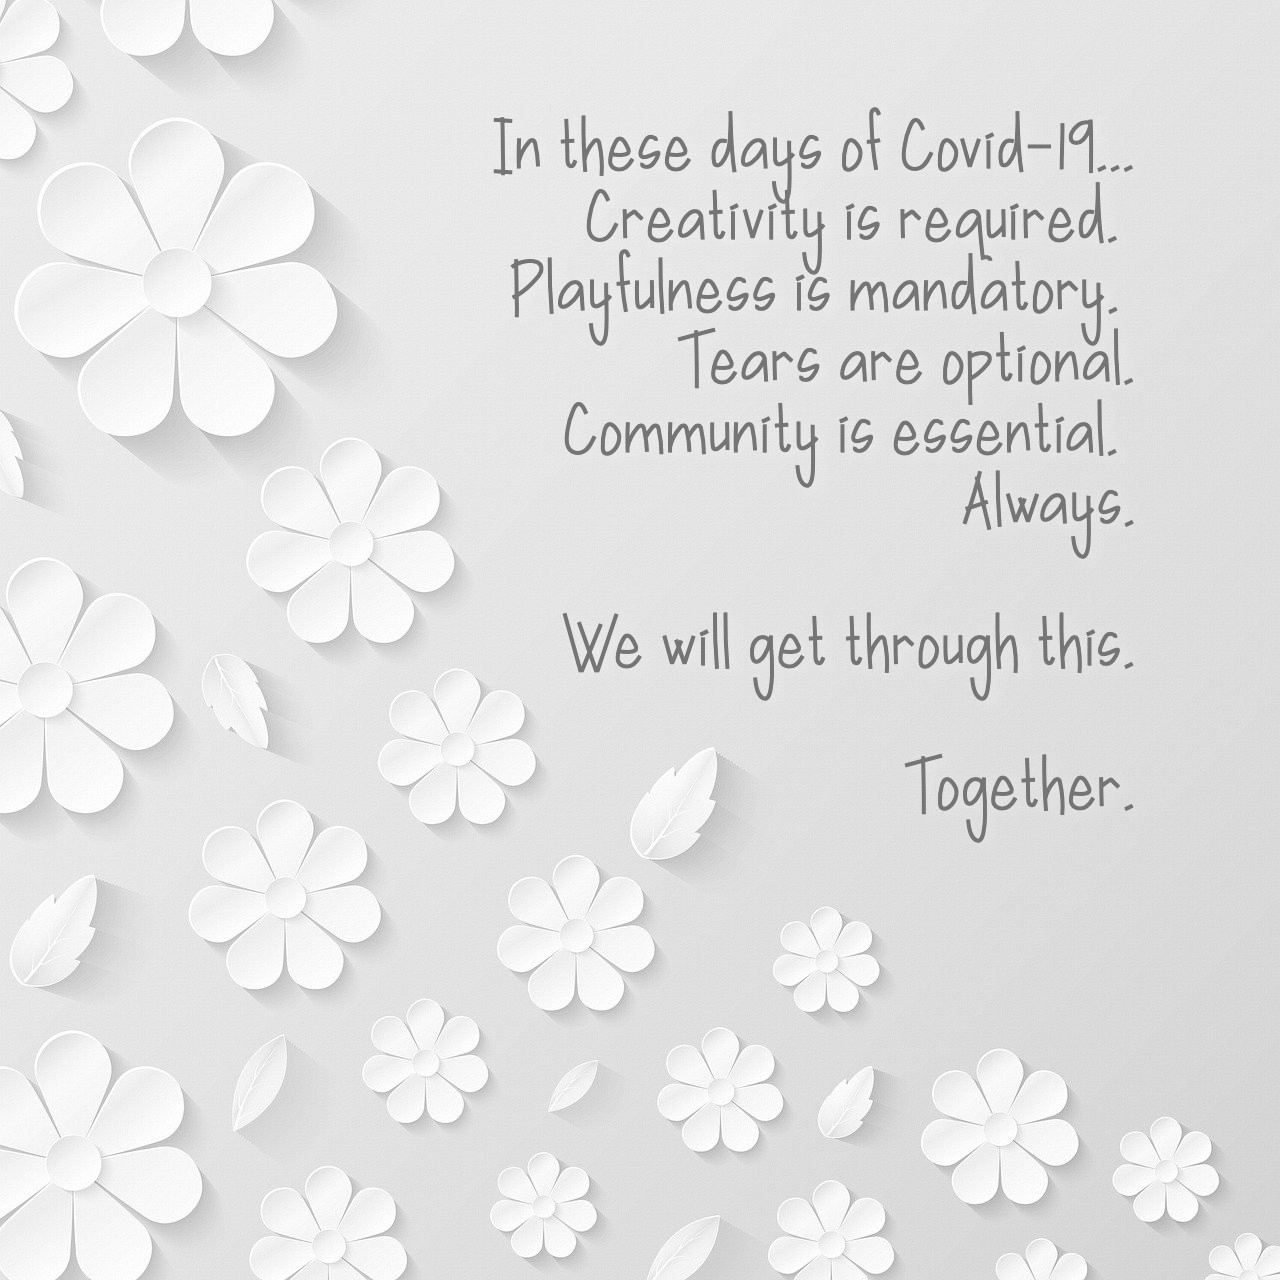 IN these days of Covid-19, creativity is required, playfulness is mandatory, tears are optional and community is essential. Always. We will get through this. Together.